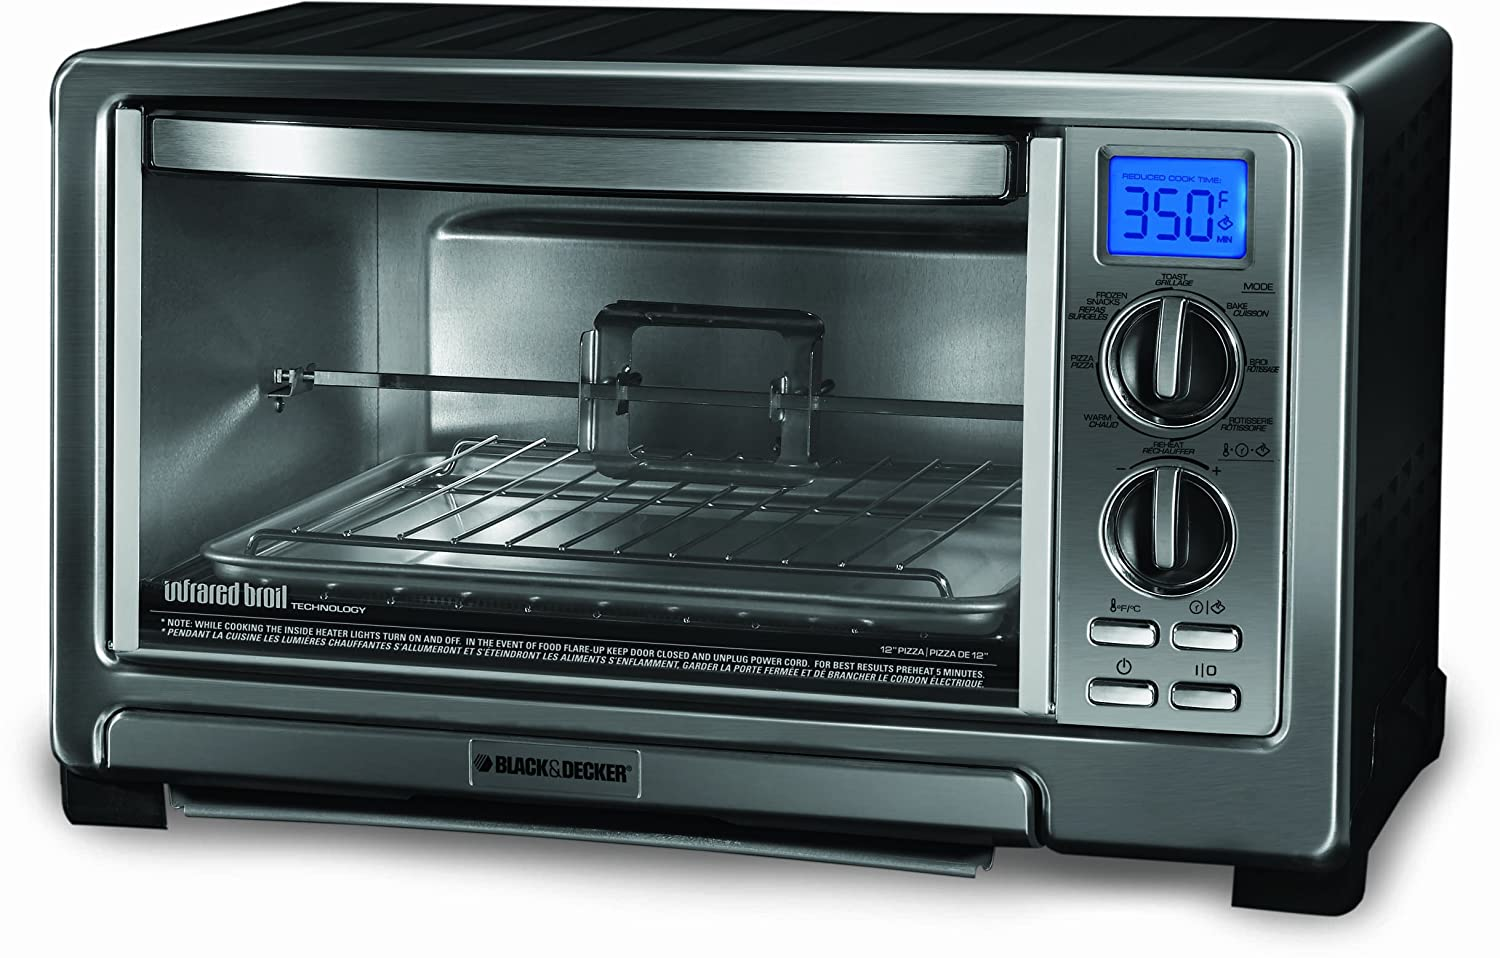 hero p ovens toaster oven infrared the smallest